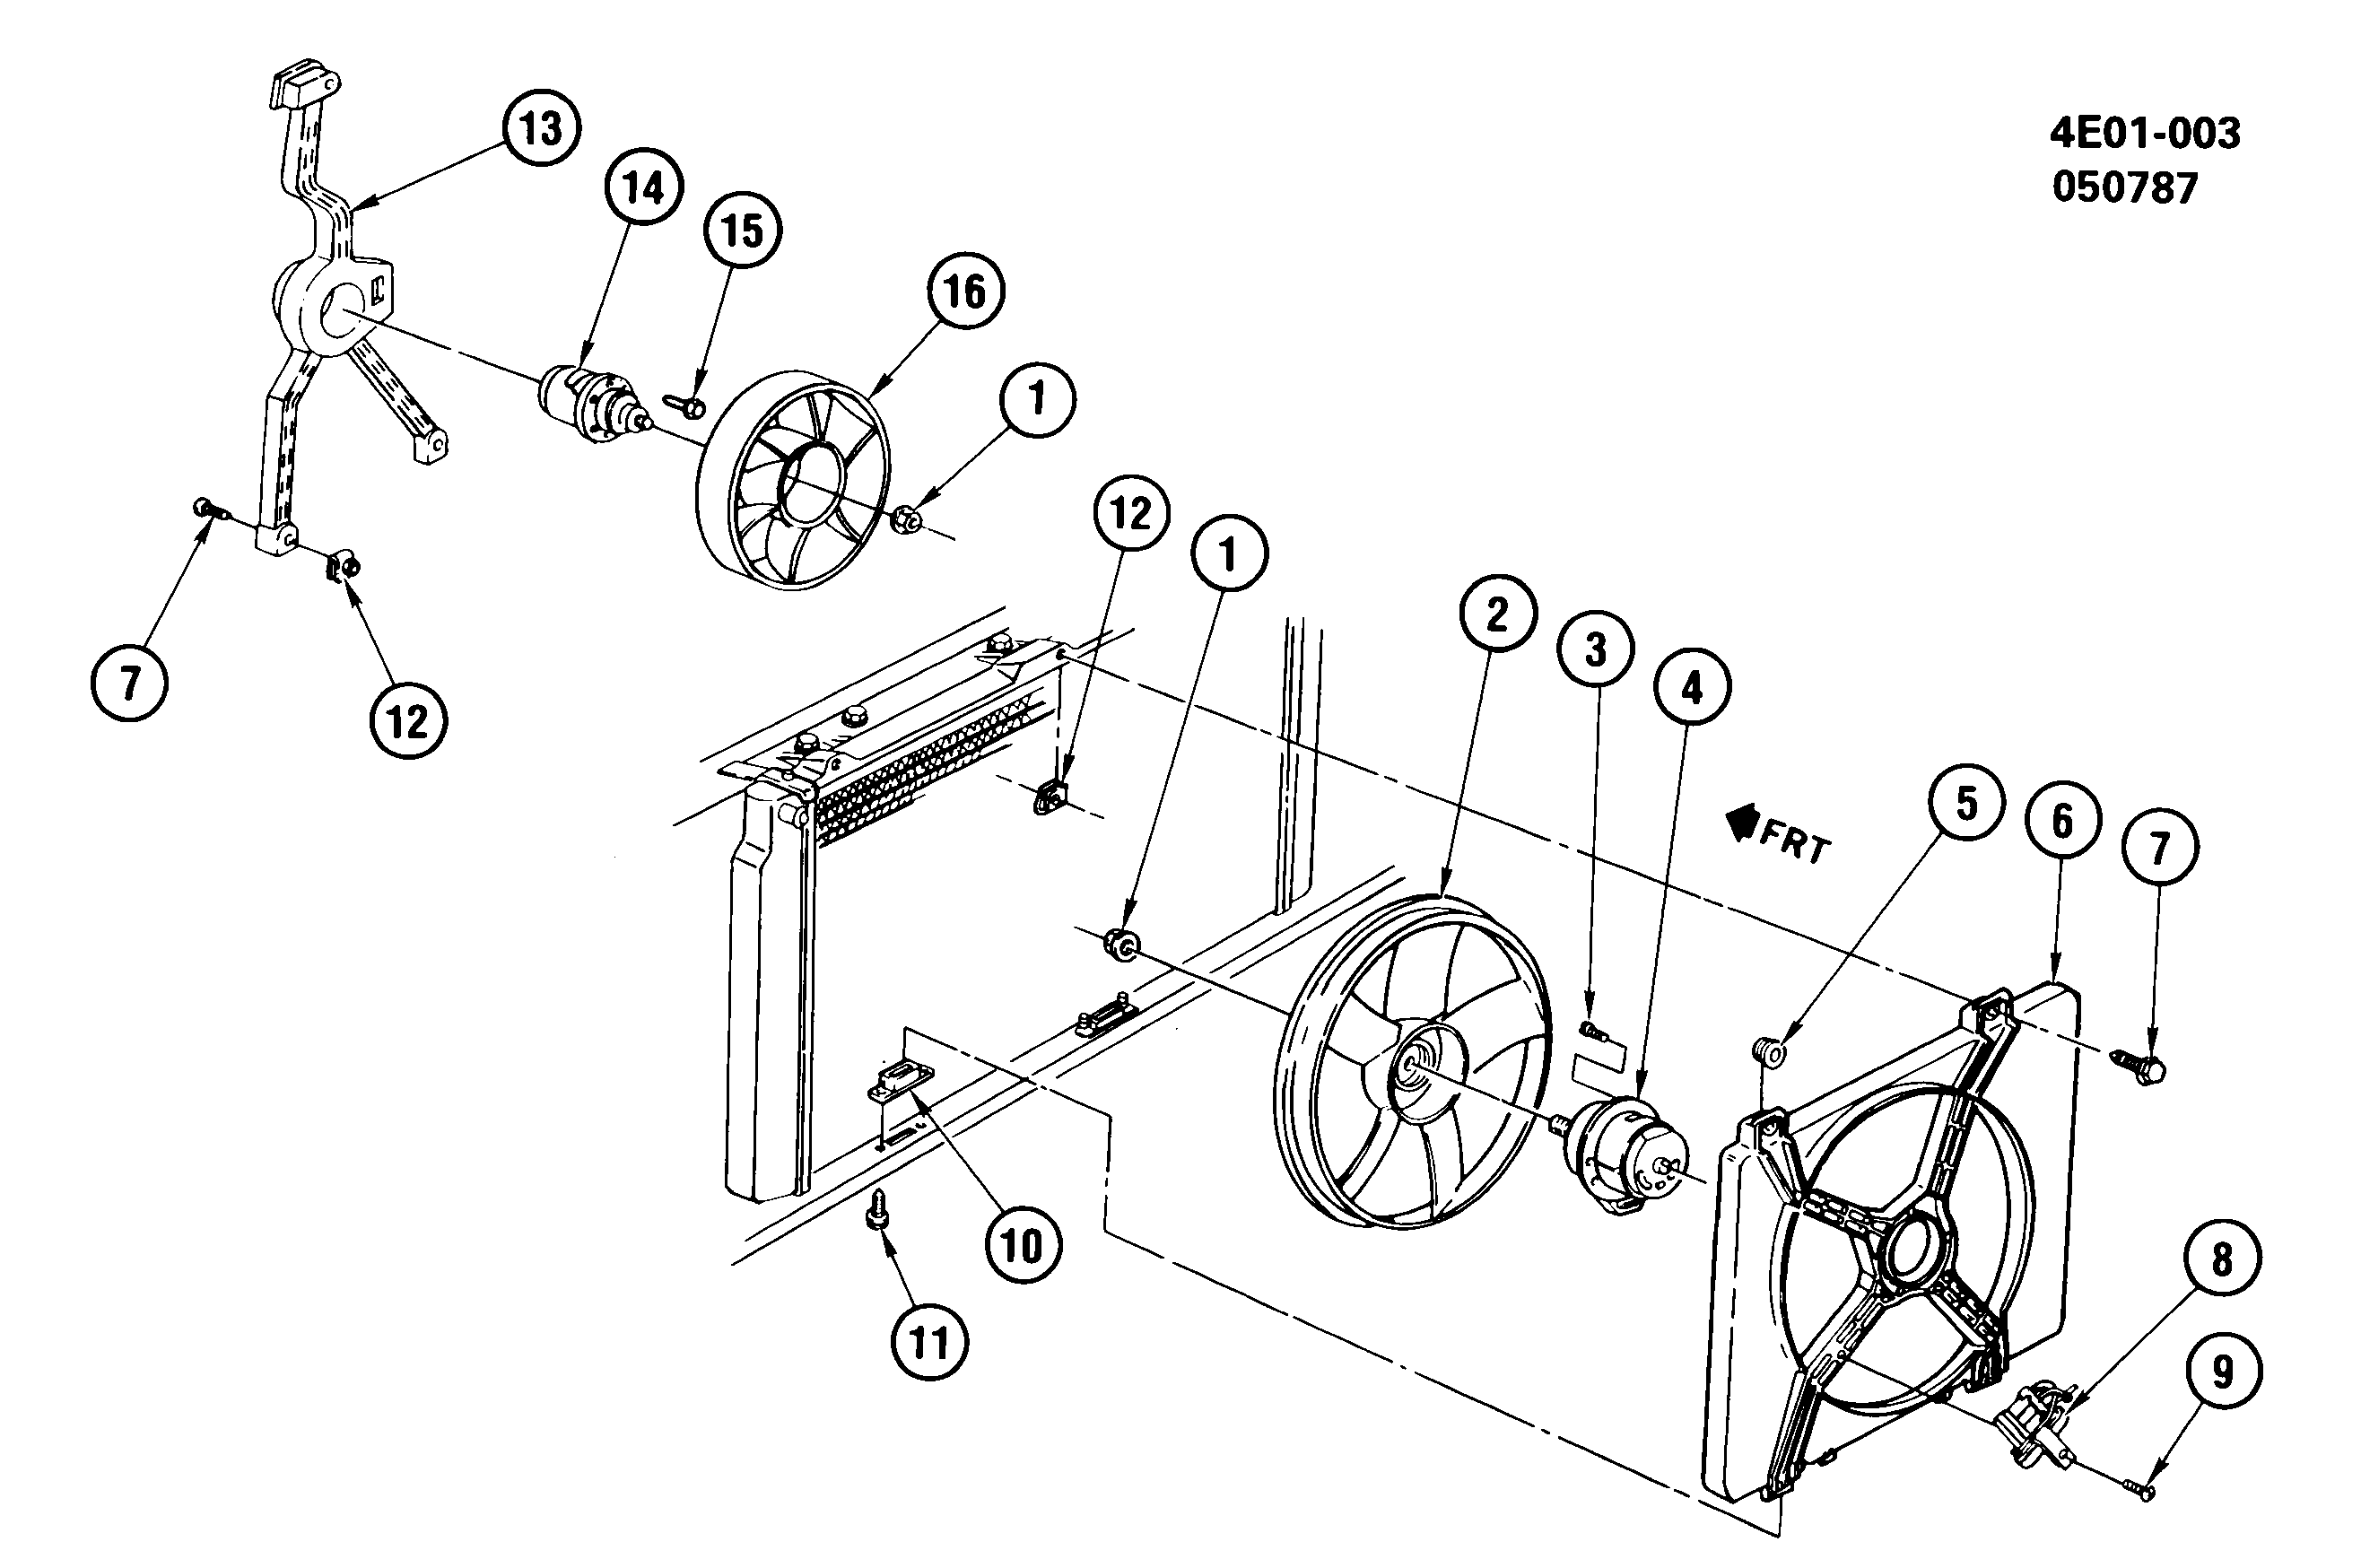 Buick Engine Coolant Wiring Library. Buick Engine Coolant. Wiring. 1989 Reatta 3800 Engine Diagram At Scoala.co